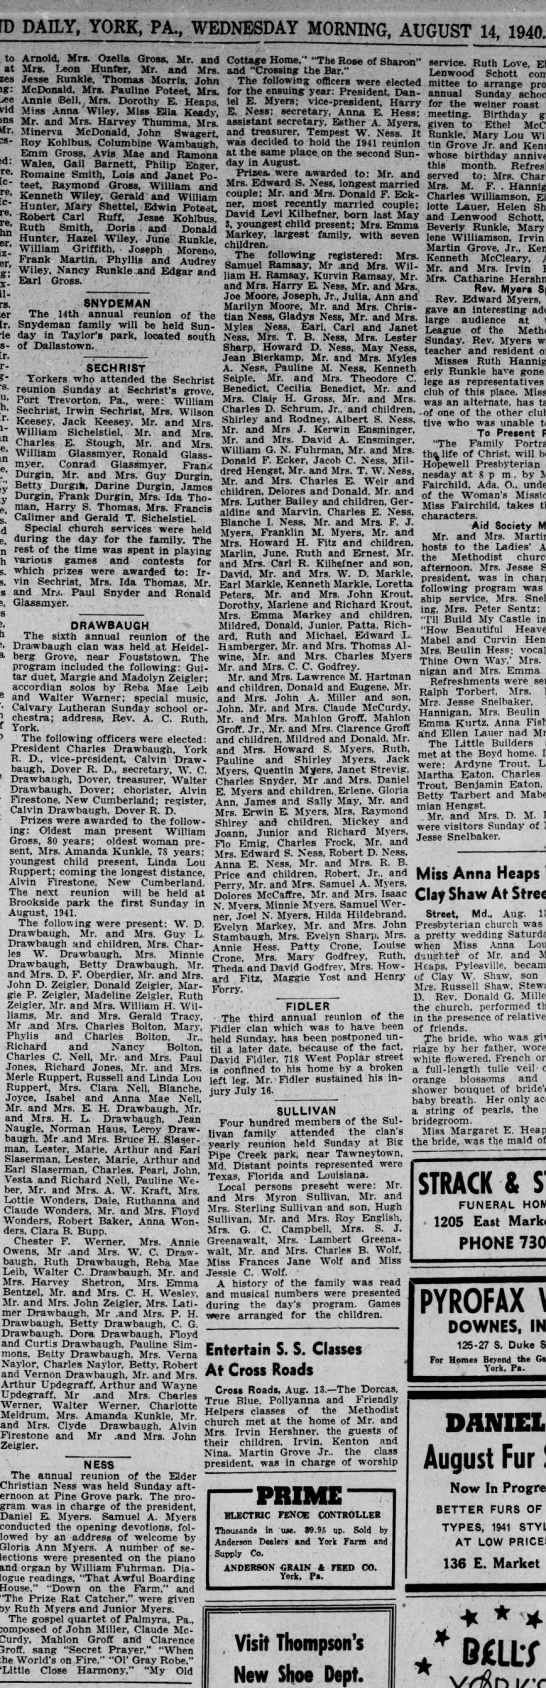 Ness, article about family reunion, dated 14 August 1940 -